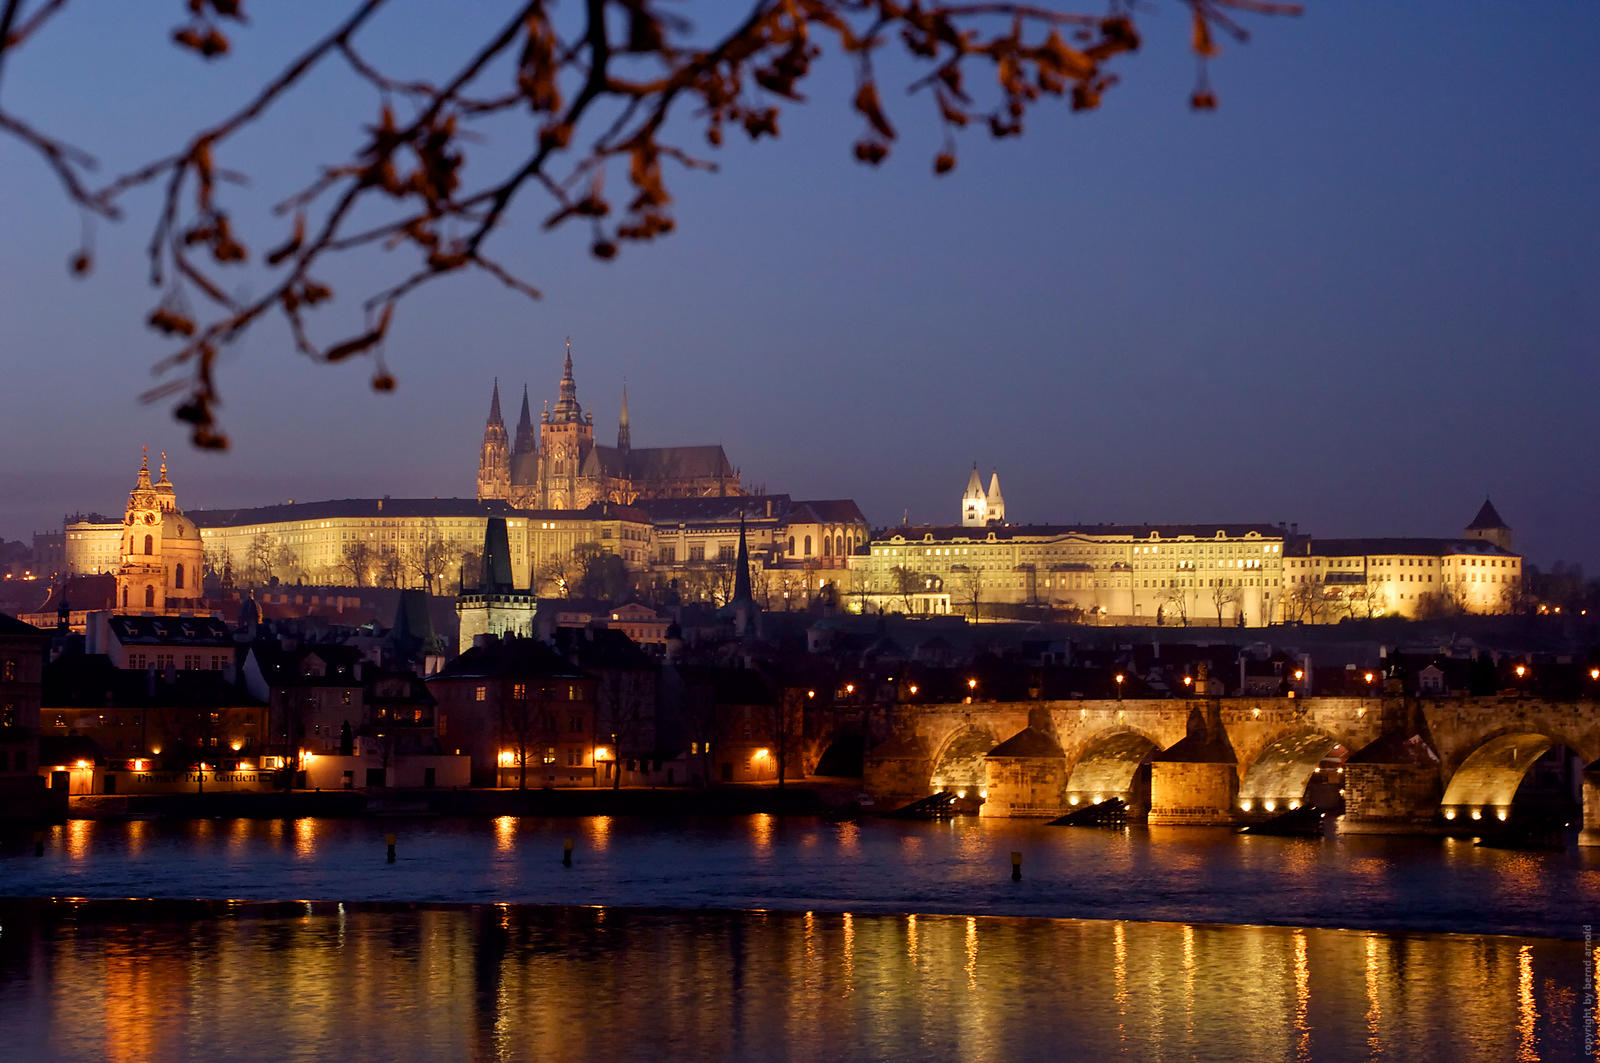 Dunkle Staedte - Prag | Dark Cities - Prague